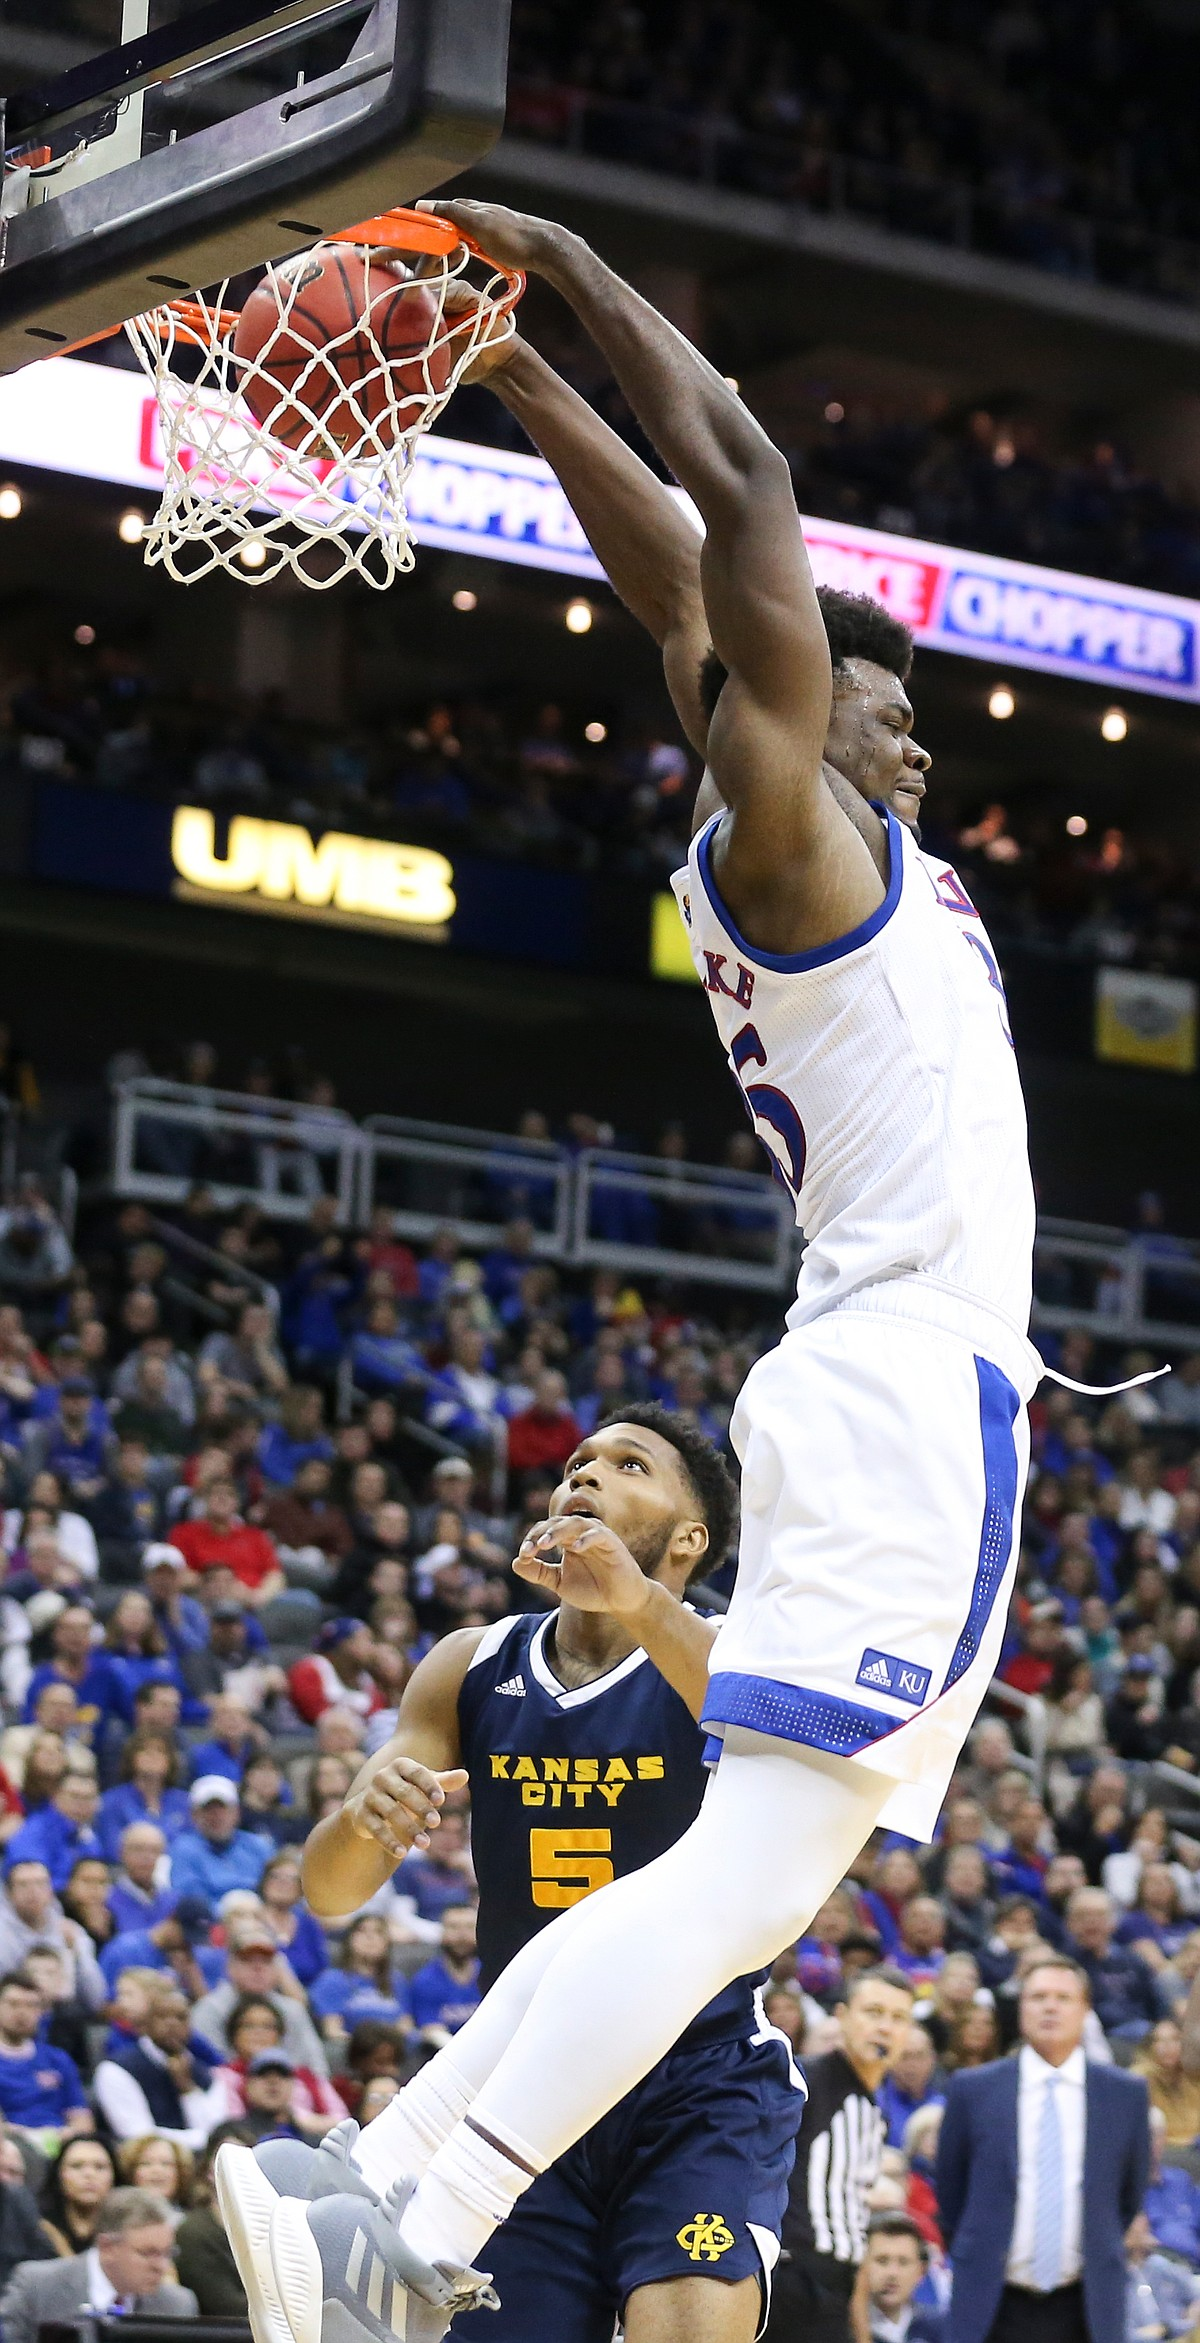 Udoka Azubuike's team-first contributions latest sign of his evolution as a player | Smithology